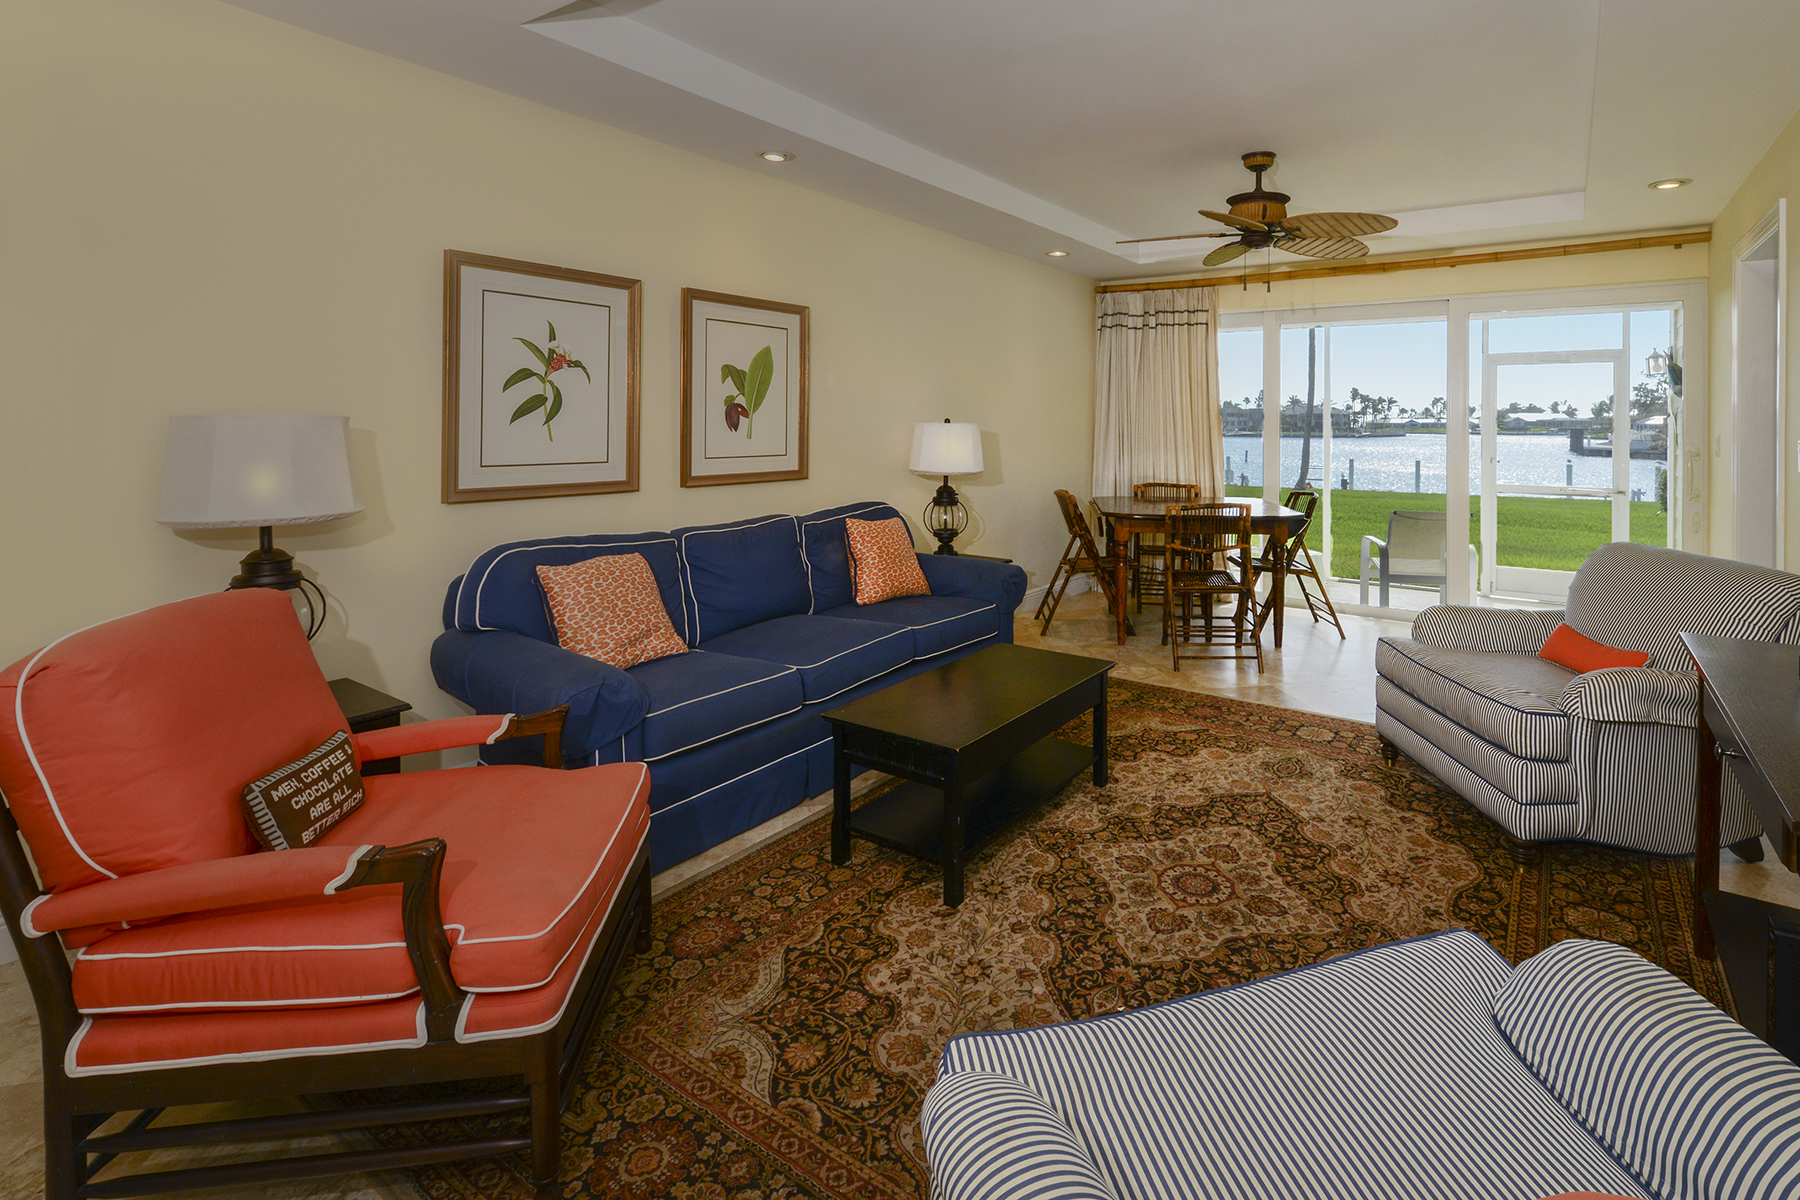 Additional photo for property listing at Spacious Waterfront Getaway at Ocean Reef 45 Anchor Drive, Unit A Key Largo, Florida 33037 Amerika Birleşik Devletleri